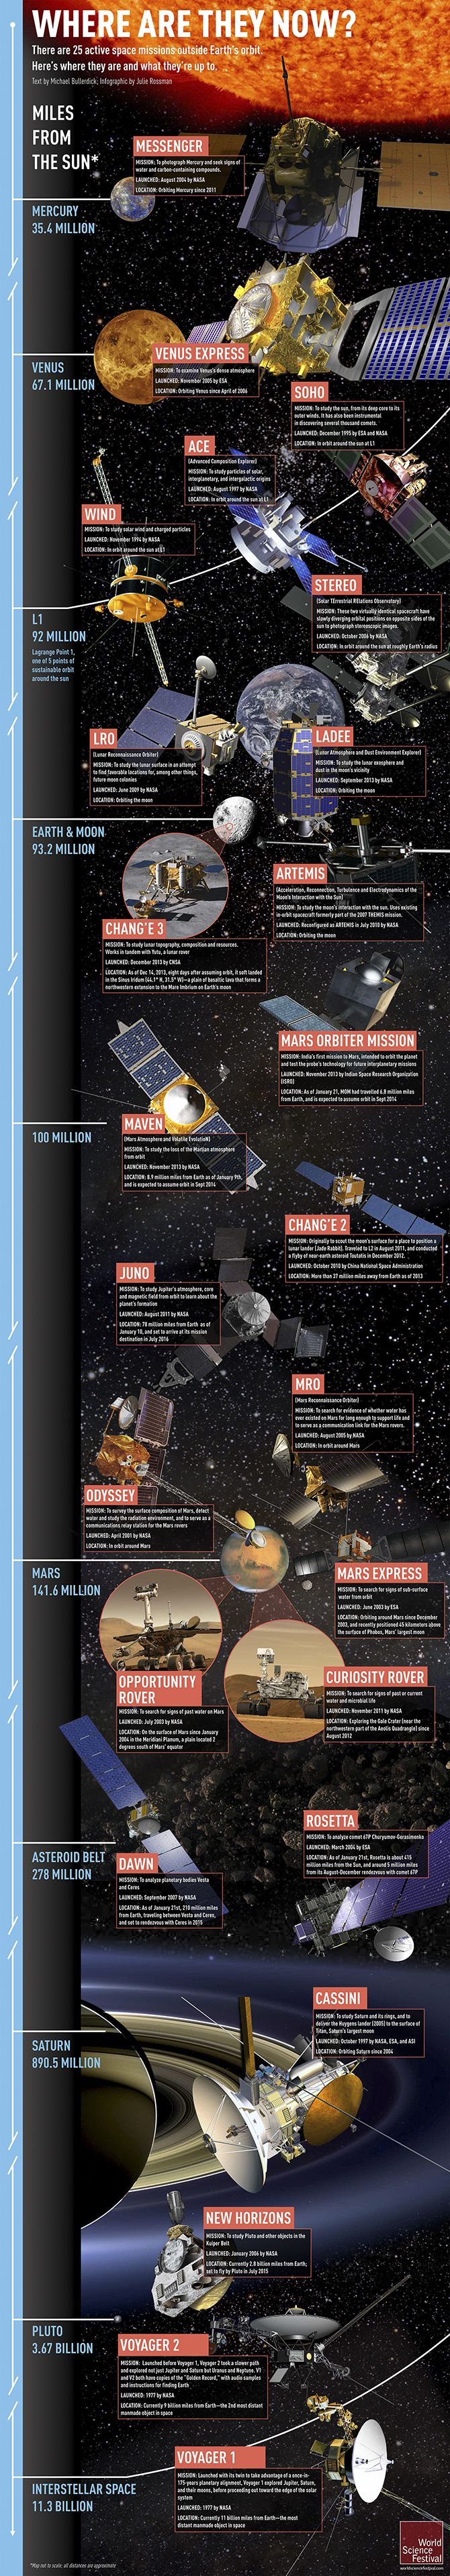 All of Earth's Active Space Missions, in One Cool Infographic